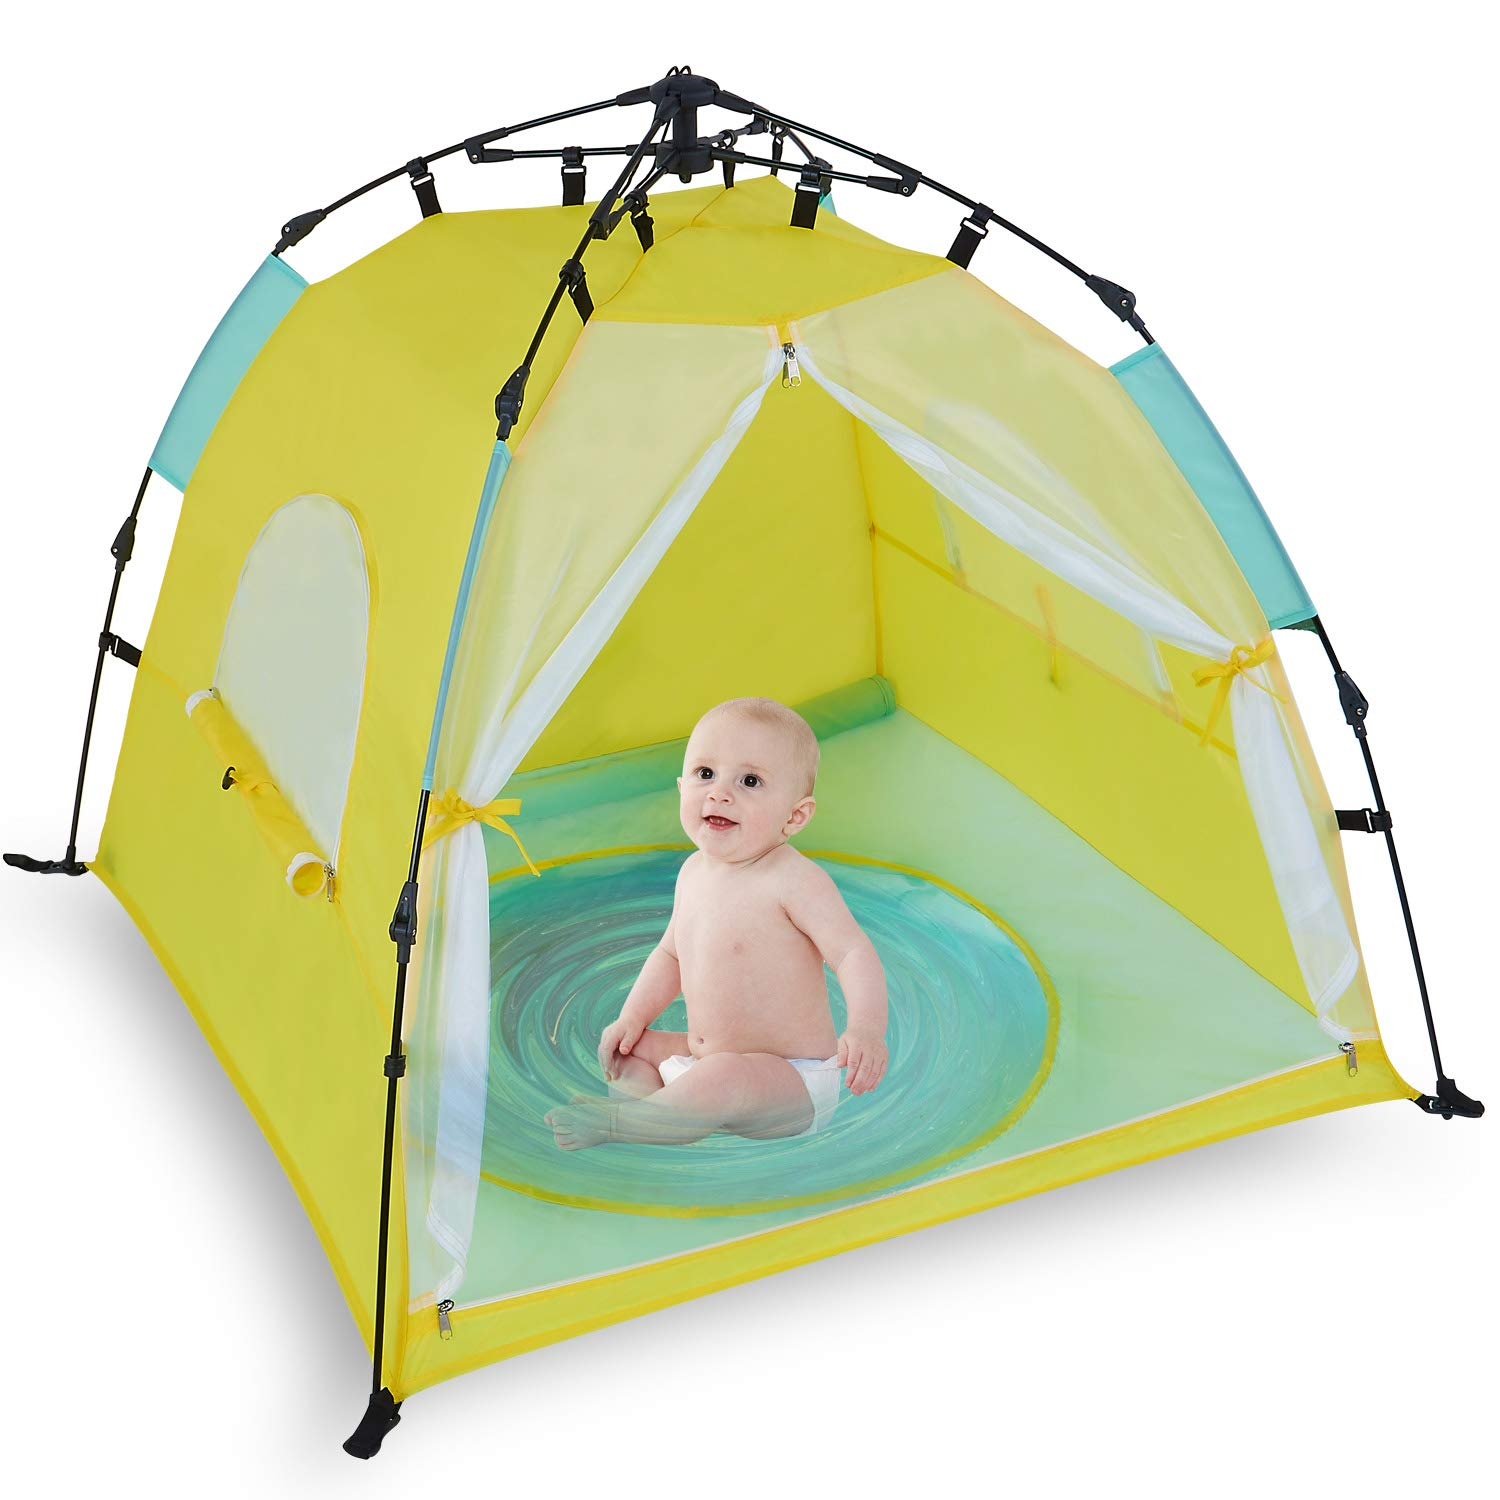 Bend River Automatic Instant Baby Tent with Pool, UPF 50+ Beach Sun Shelter, Portable Mosquito Net/Travel Bed for Infant by Bend River